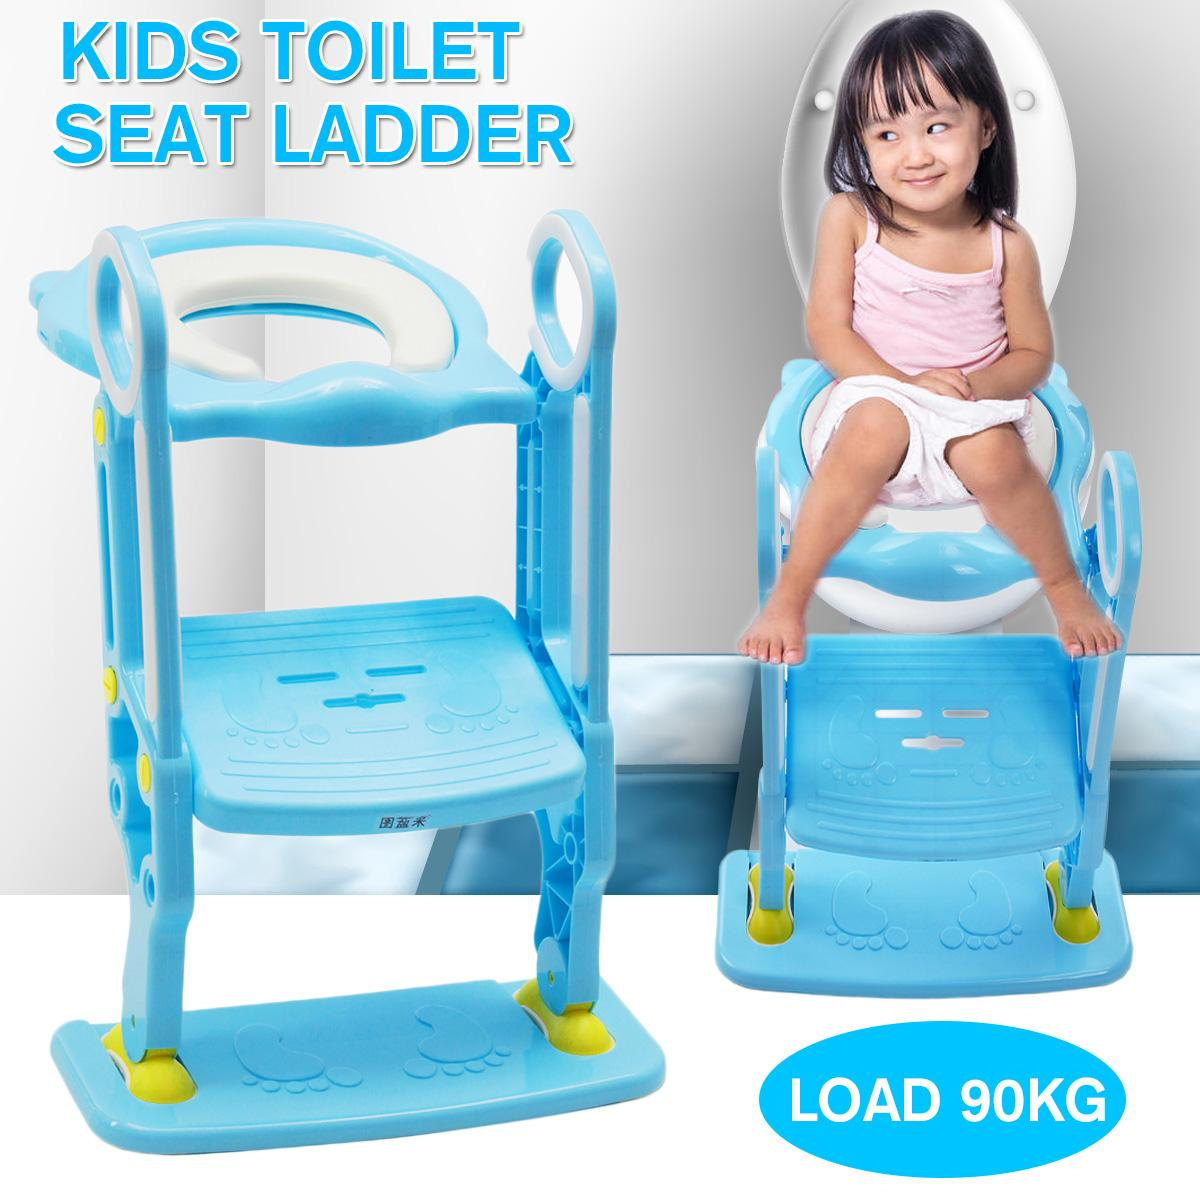 BLUE TOILET POTTY TRAINING STEP LADDER LOO SEAT BABY KIDS//TODDLER//CHILD FUN EASY